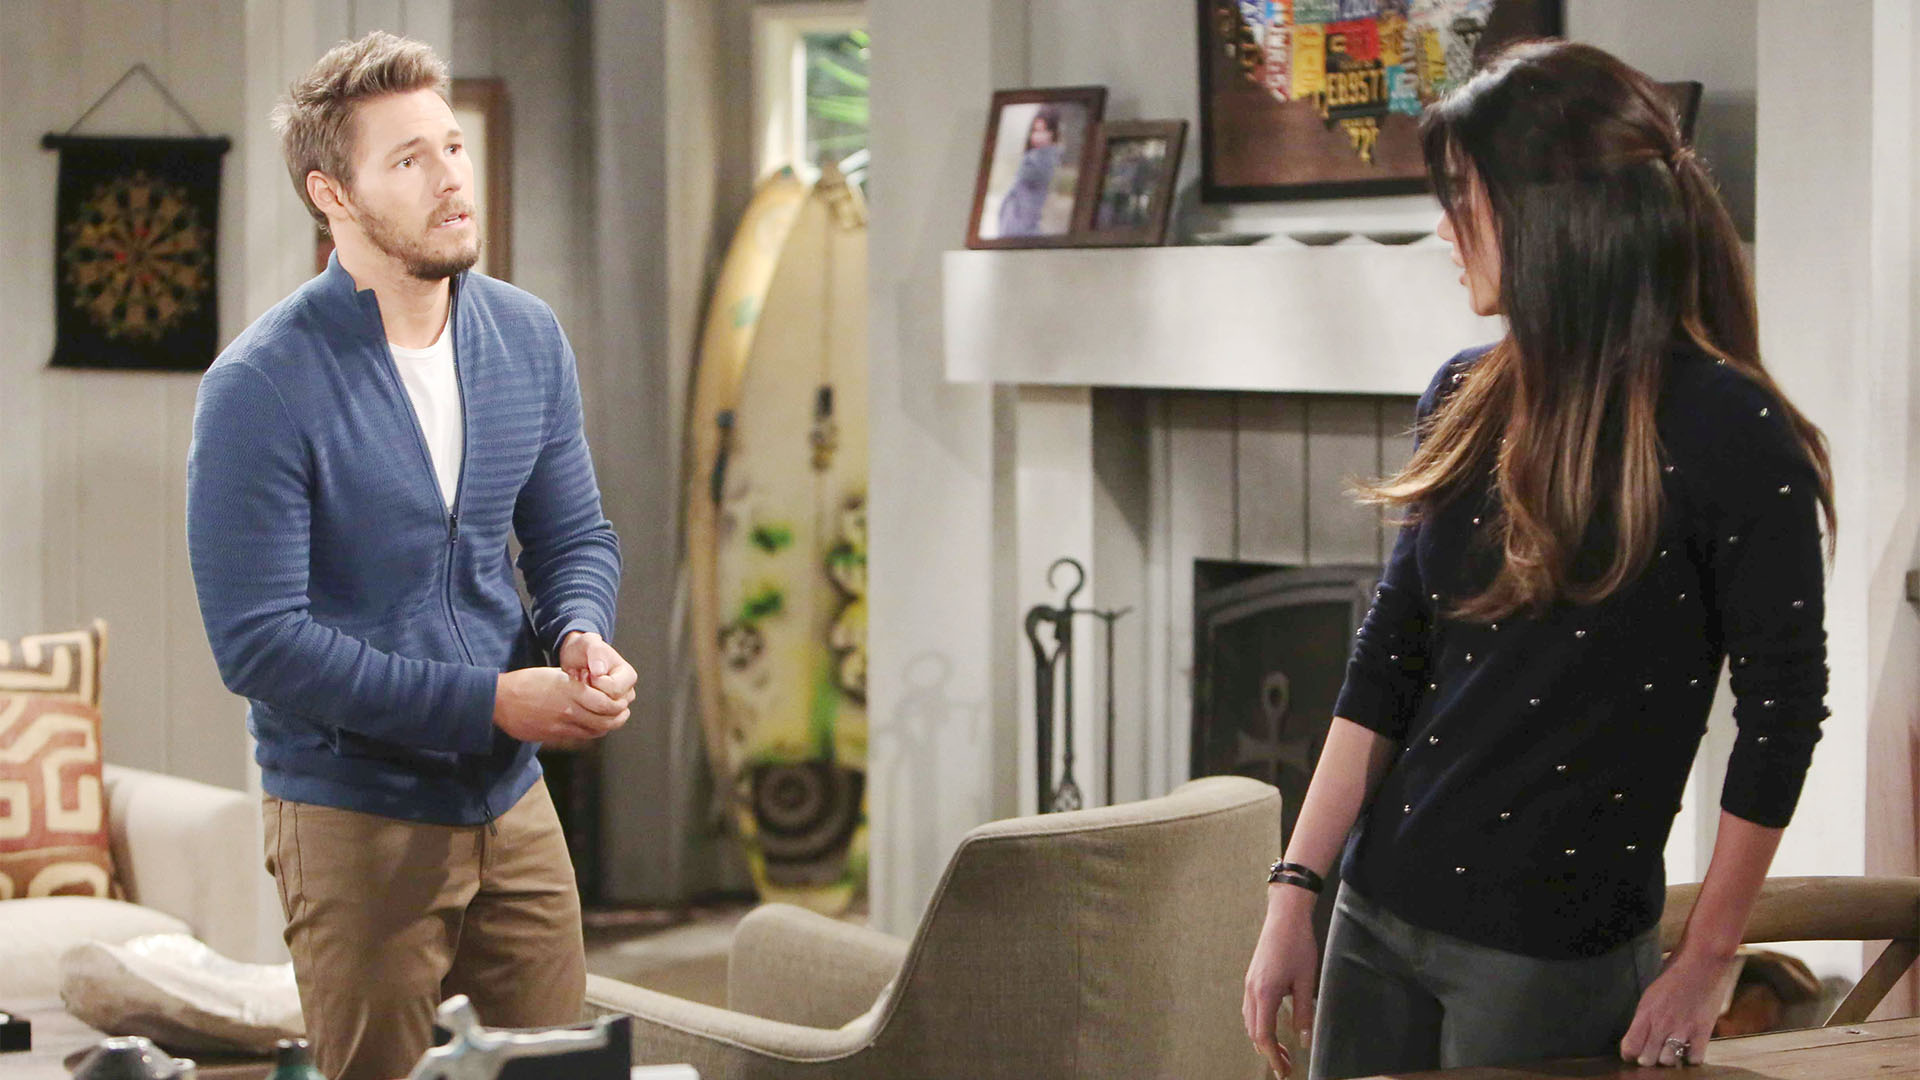 Steffy's actions lead her to become more forgiving of Liam's minor indiscretion.